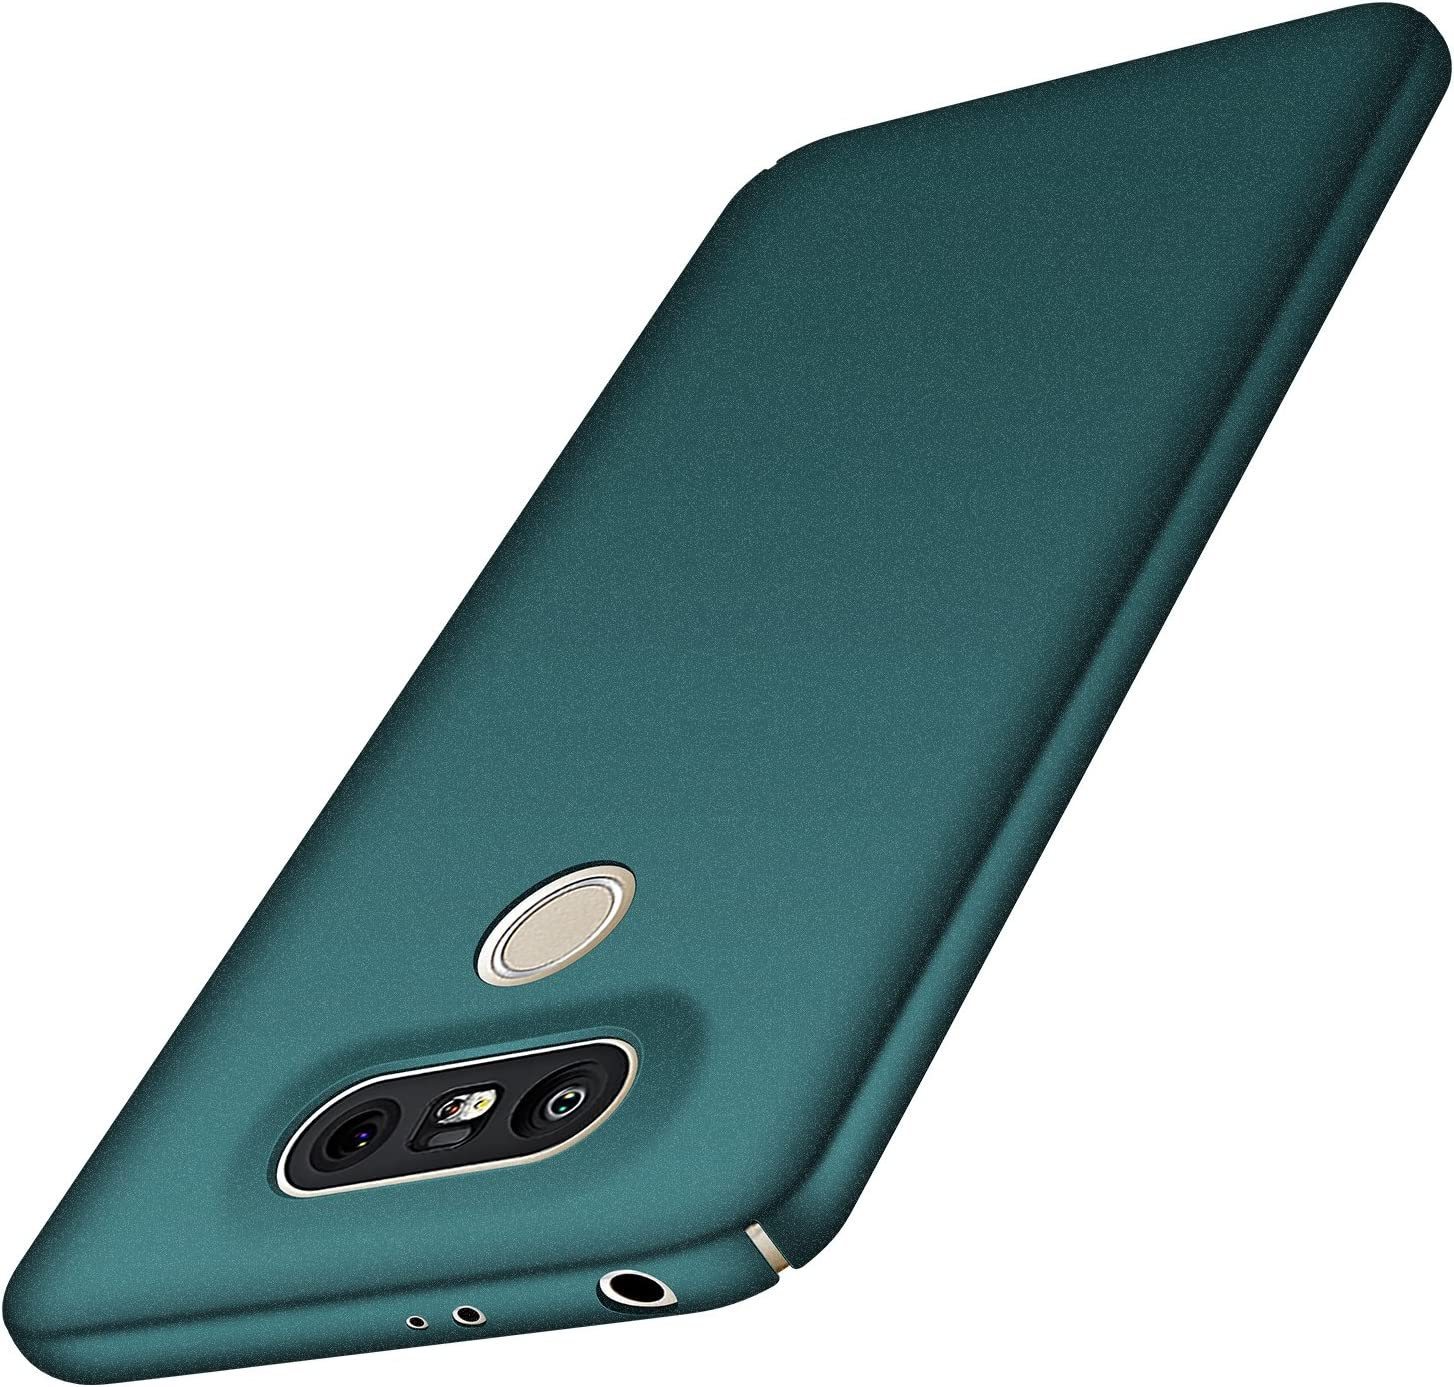 Anccer LG G5 Case [Colorful Series] [Ultra-Thin] [Anti-Drop] Premium Material Slim Full Protection Cover for LG G5 (Gravel Green)